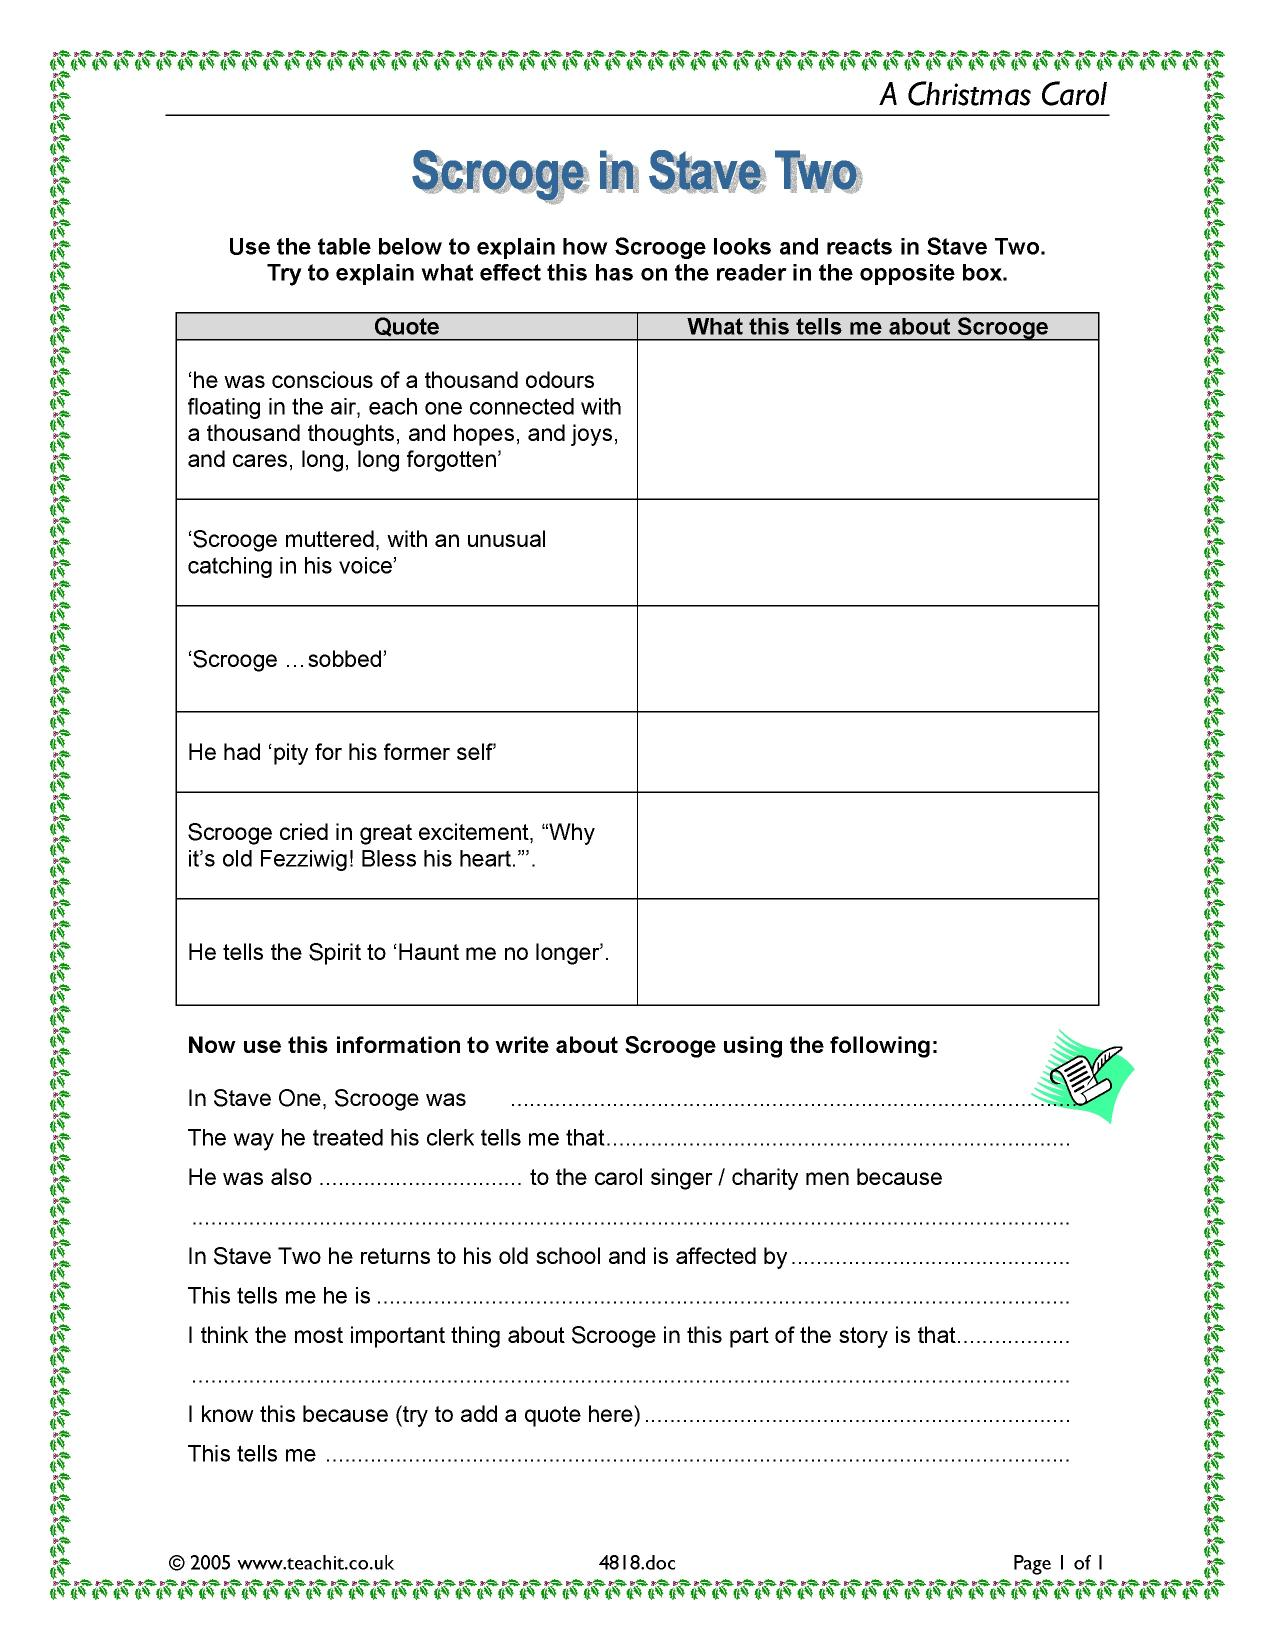 KS4 A Christmas Carol by Charles Dickens – A Christmas Carol Worksheets